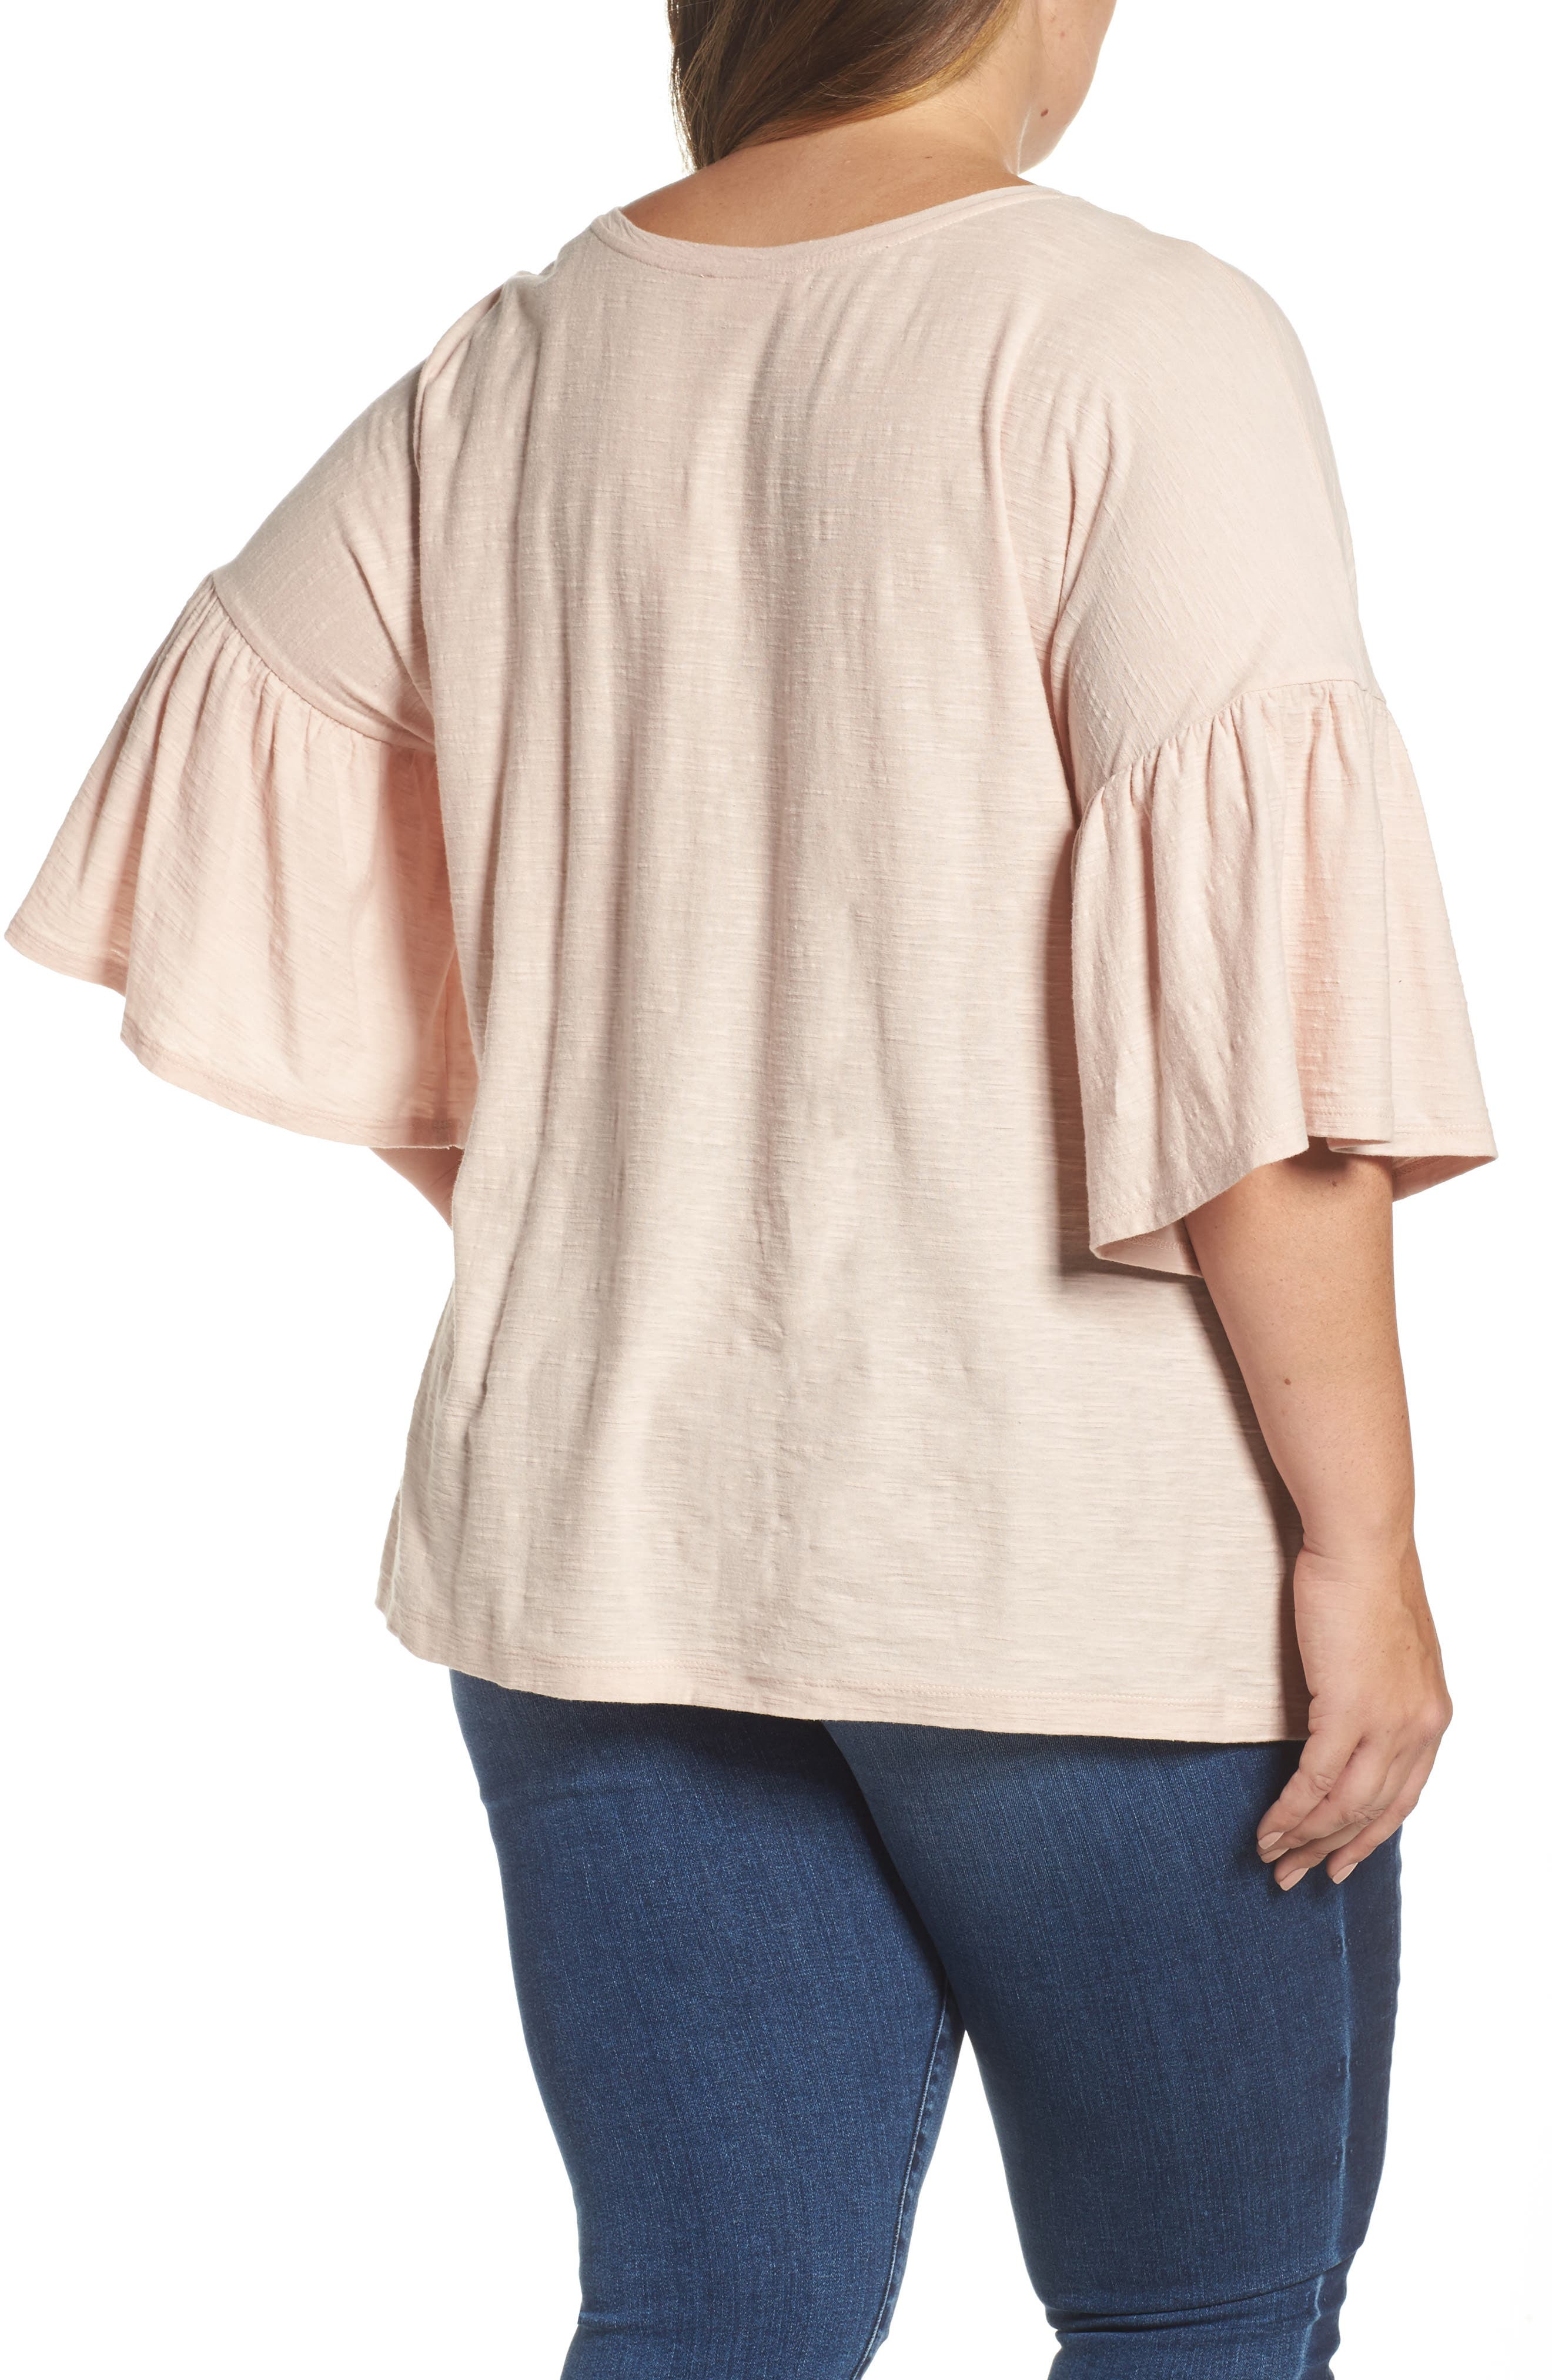 Vince Camuto Relaxed Bell Sleeve Cotton Tee,                             Alternate thumbnail 2, color,                             651